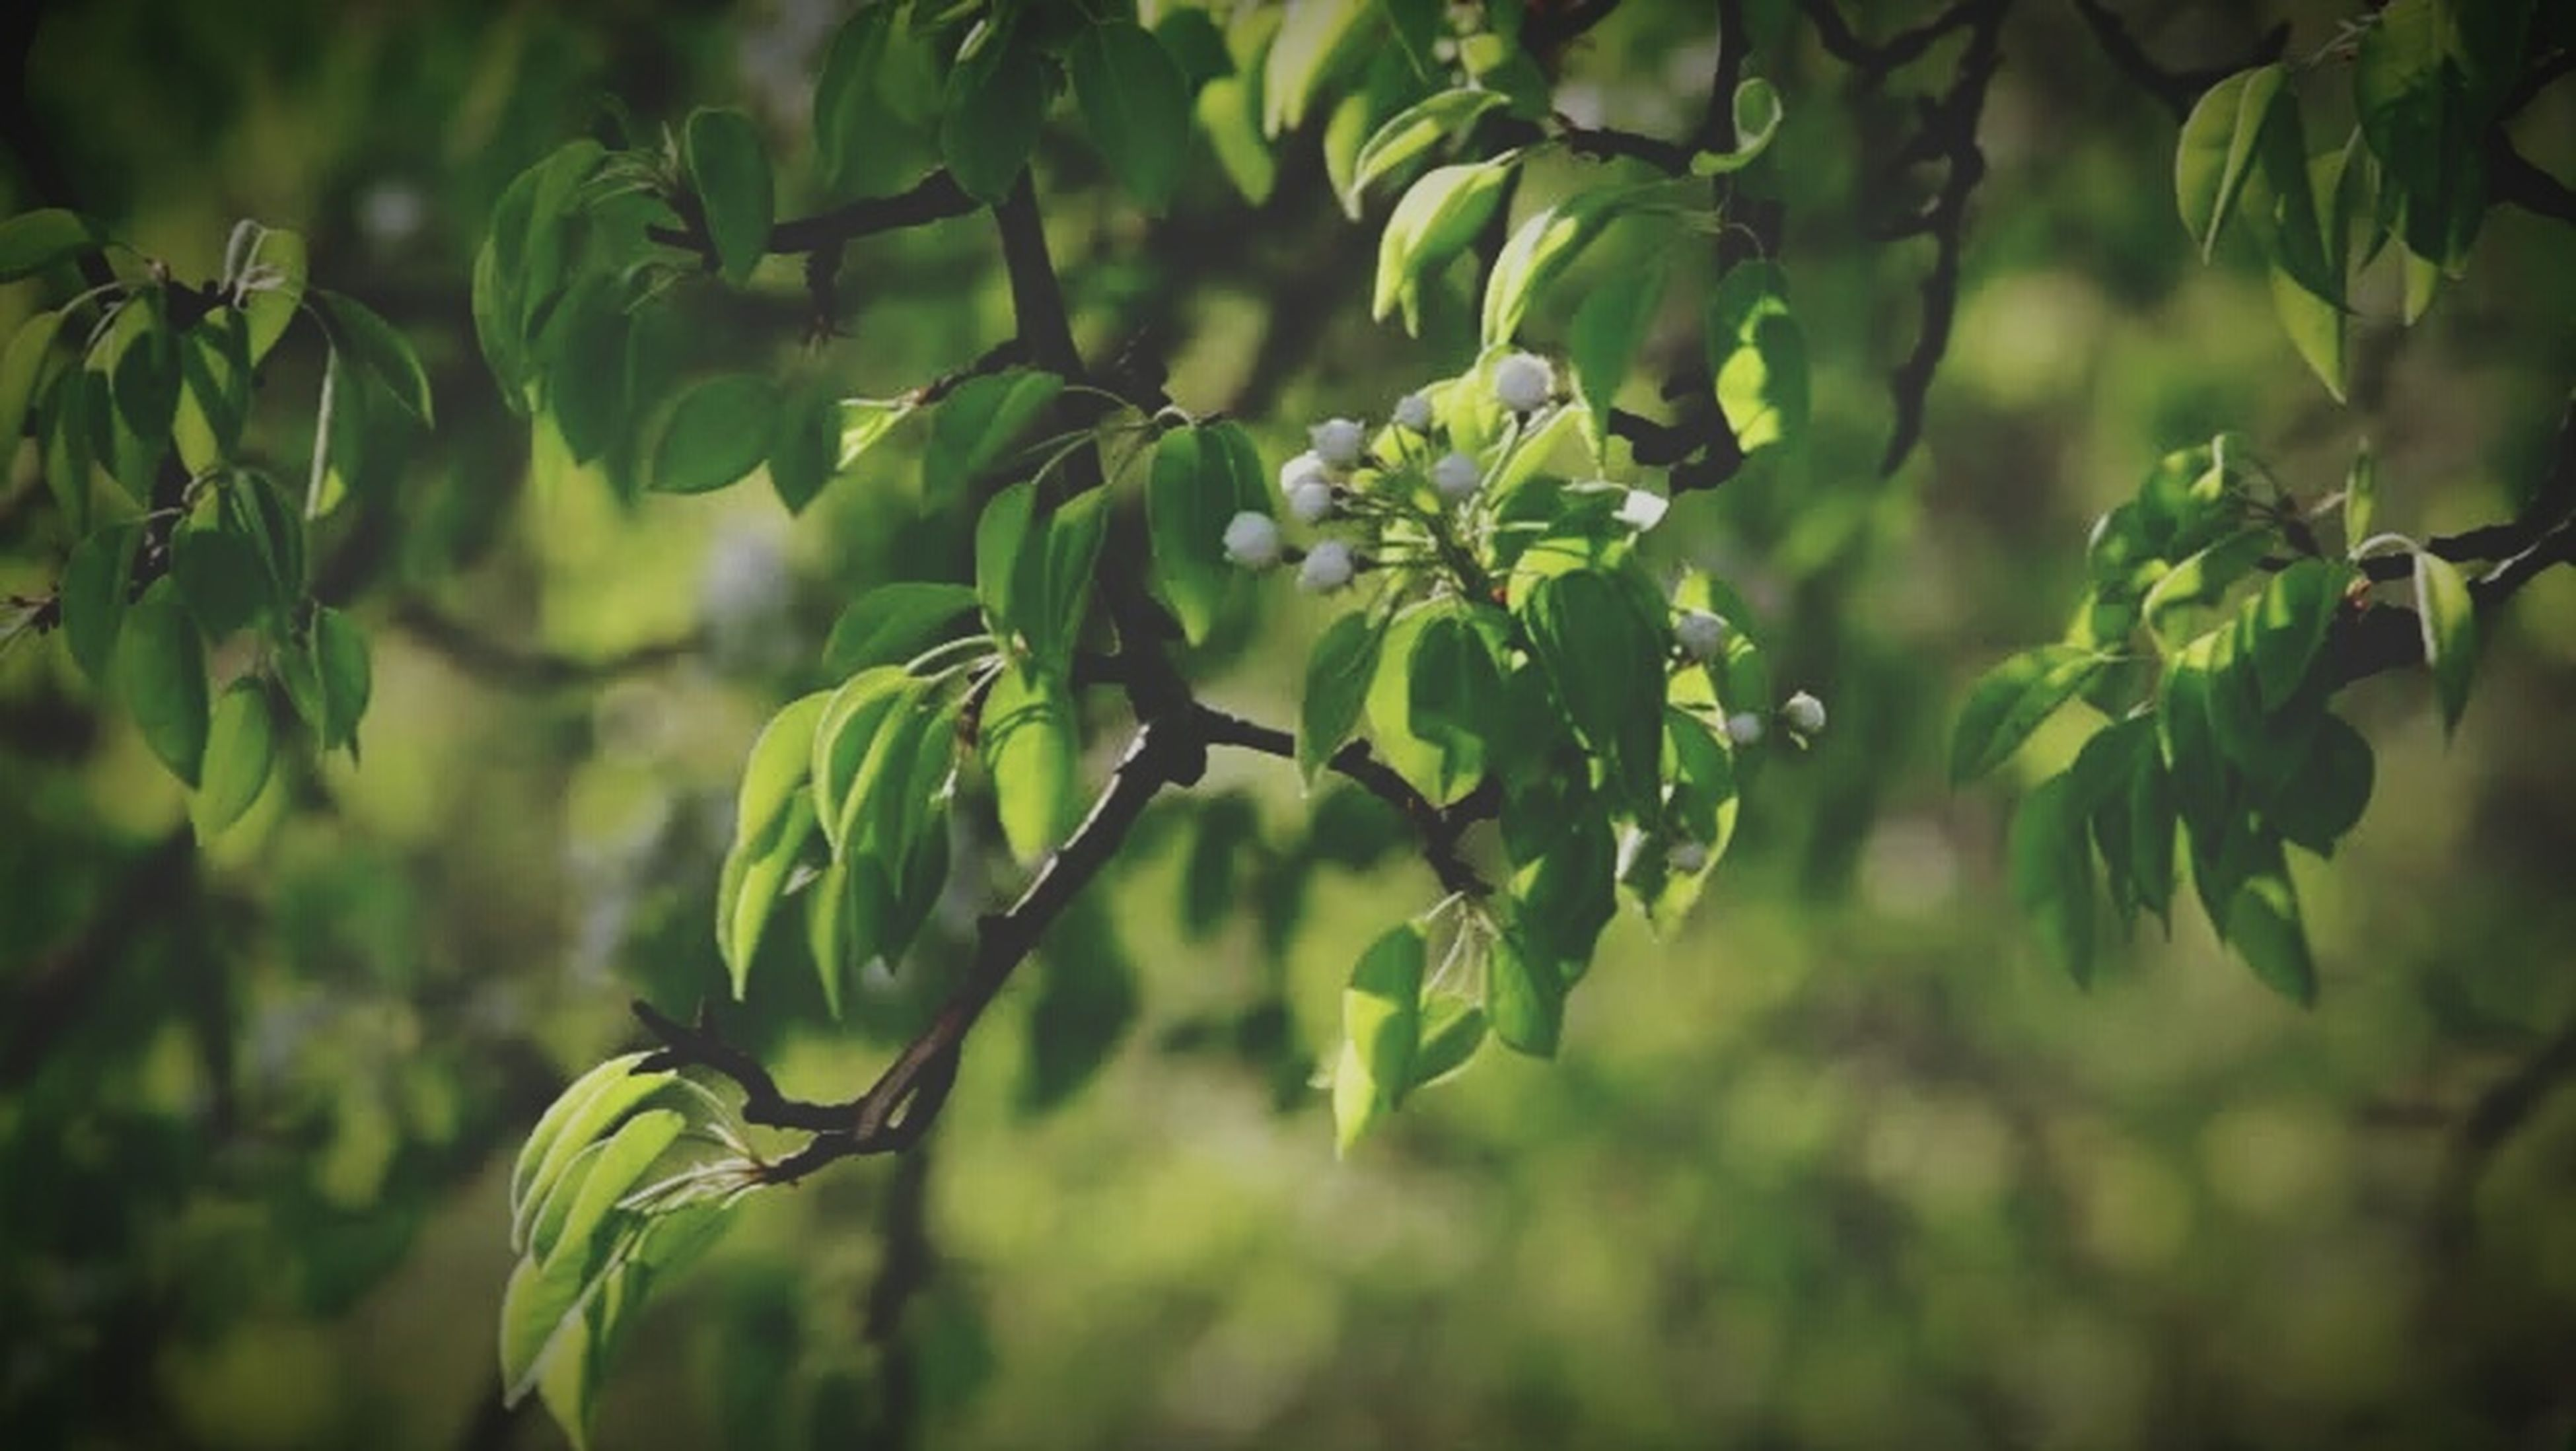 fruit, growth, green color, focus on foreground, nature, agriculture, close-up, tree, food and drink, outdoors, food, no people, freshness, healthy eating, day